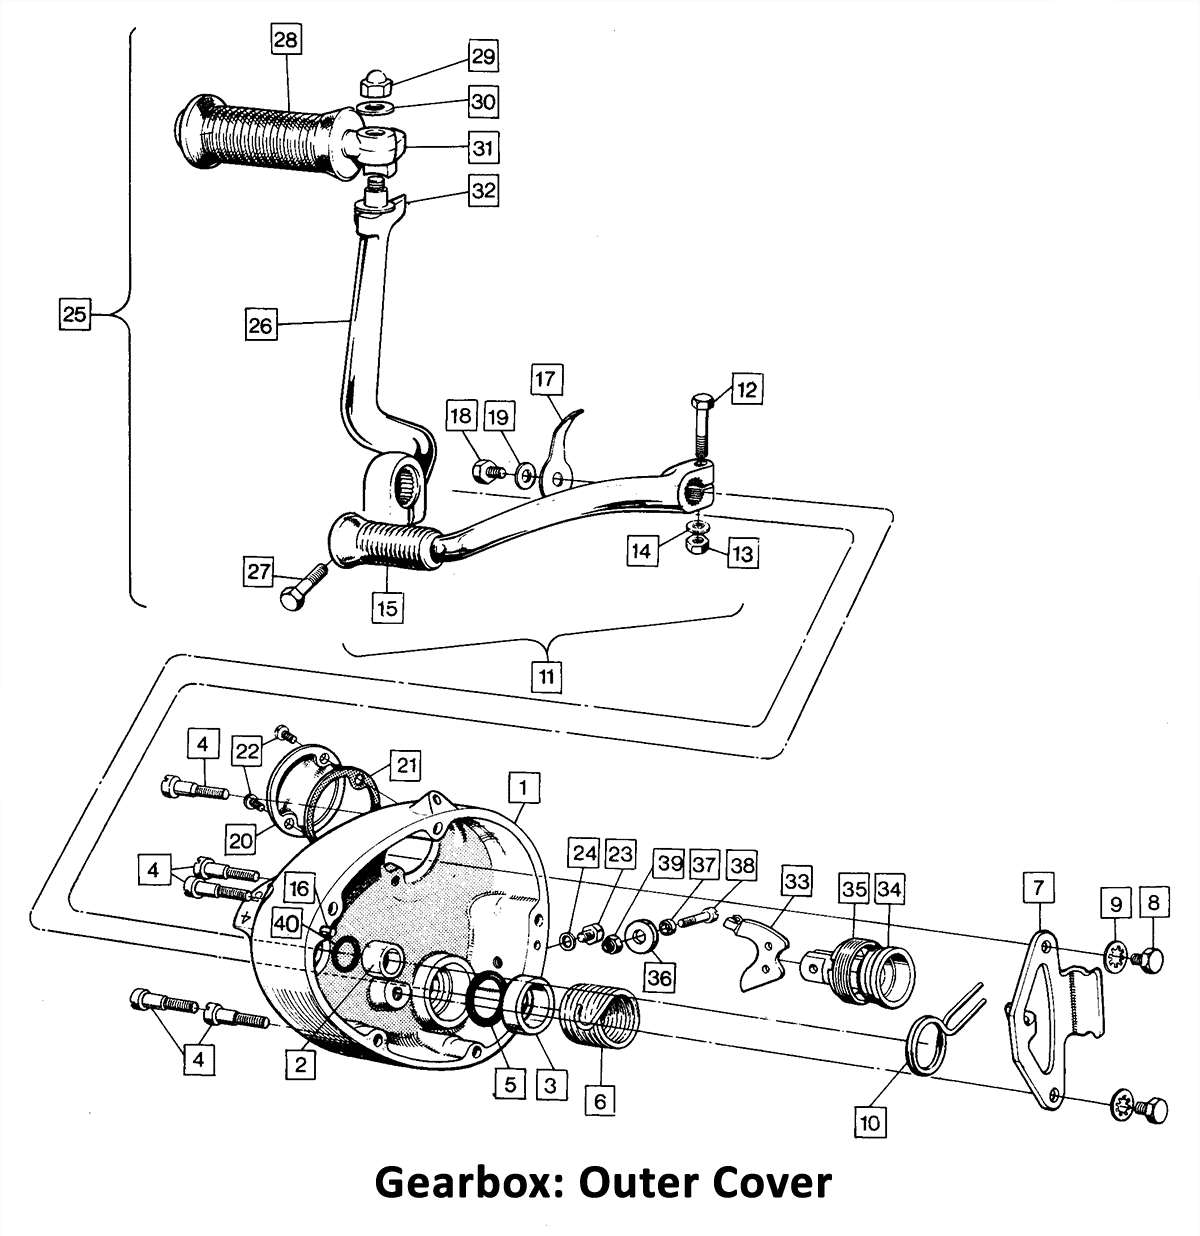 1973-74 Norton Commando 750 & 850 Gearbox: Outer Cover